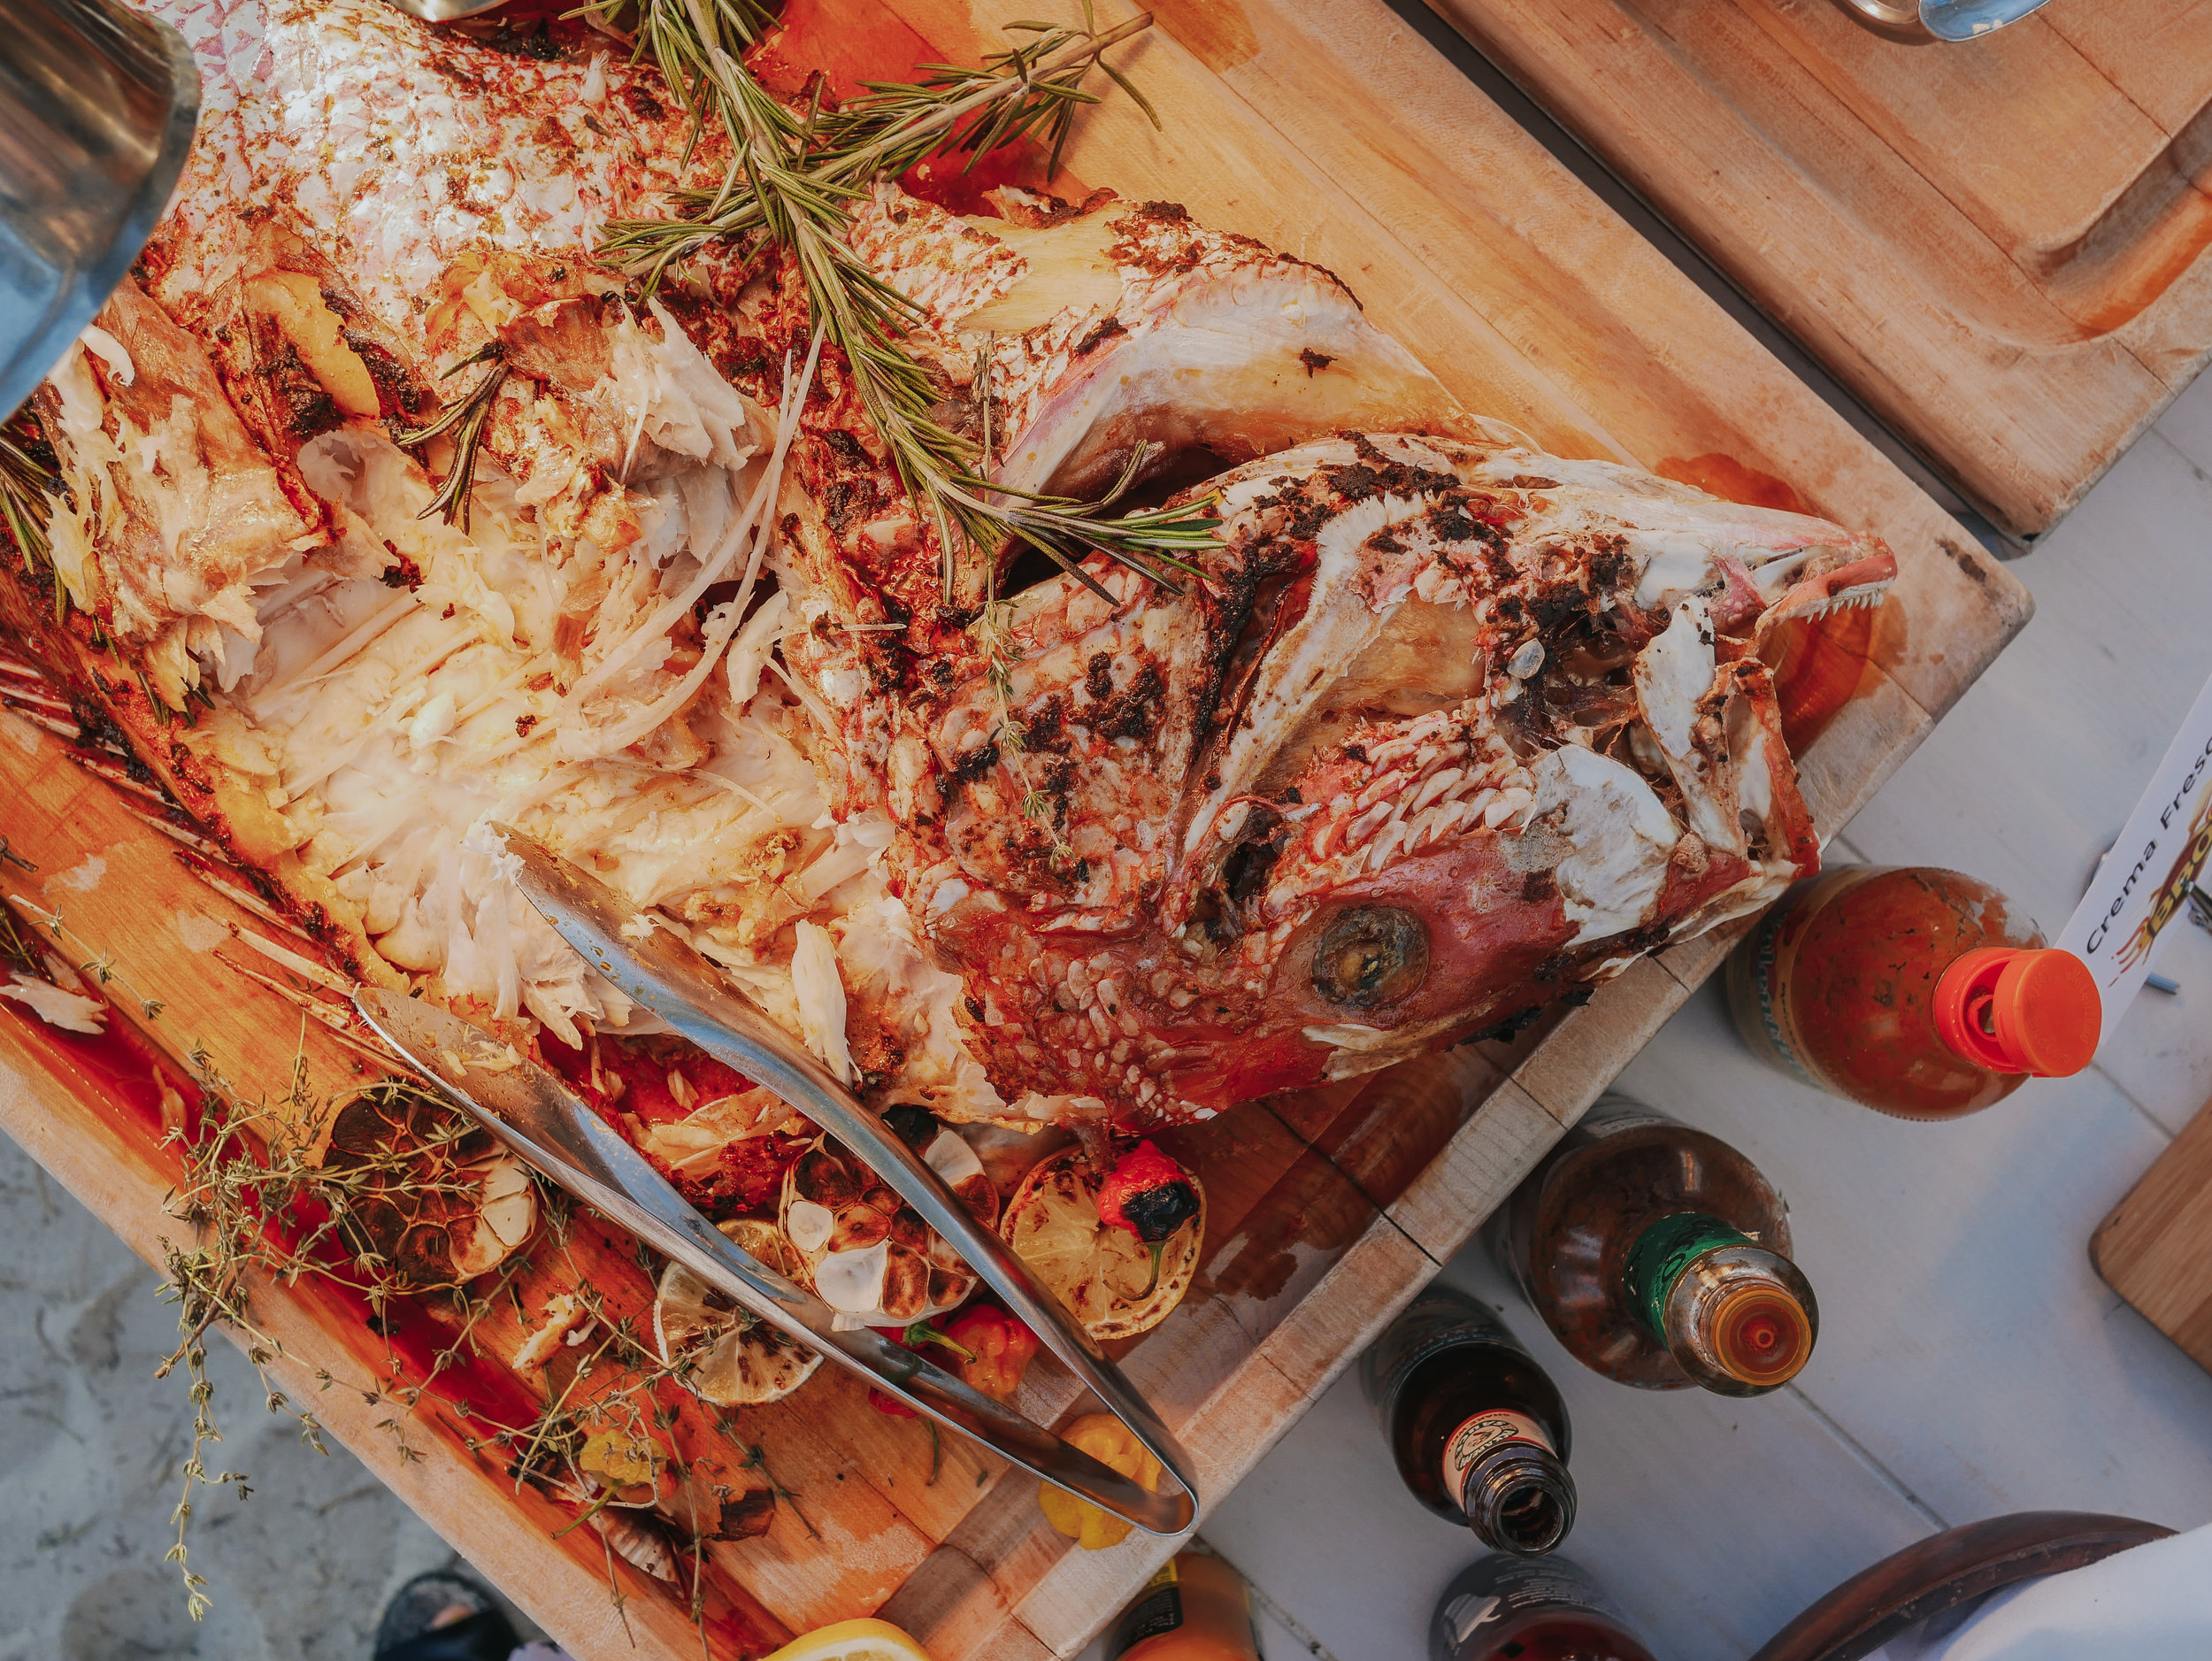 Whole grilled red snapper garnished decadently with lots of lemon, garlic and rosemary